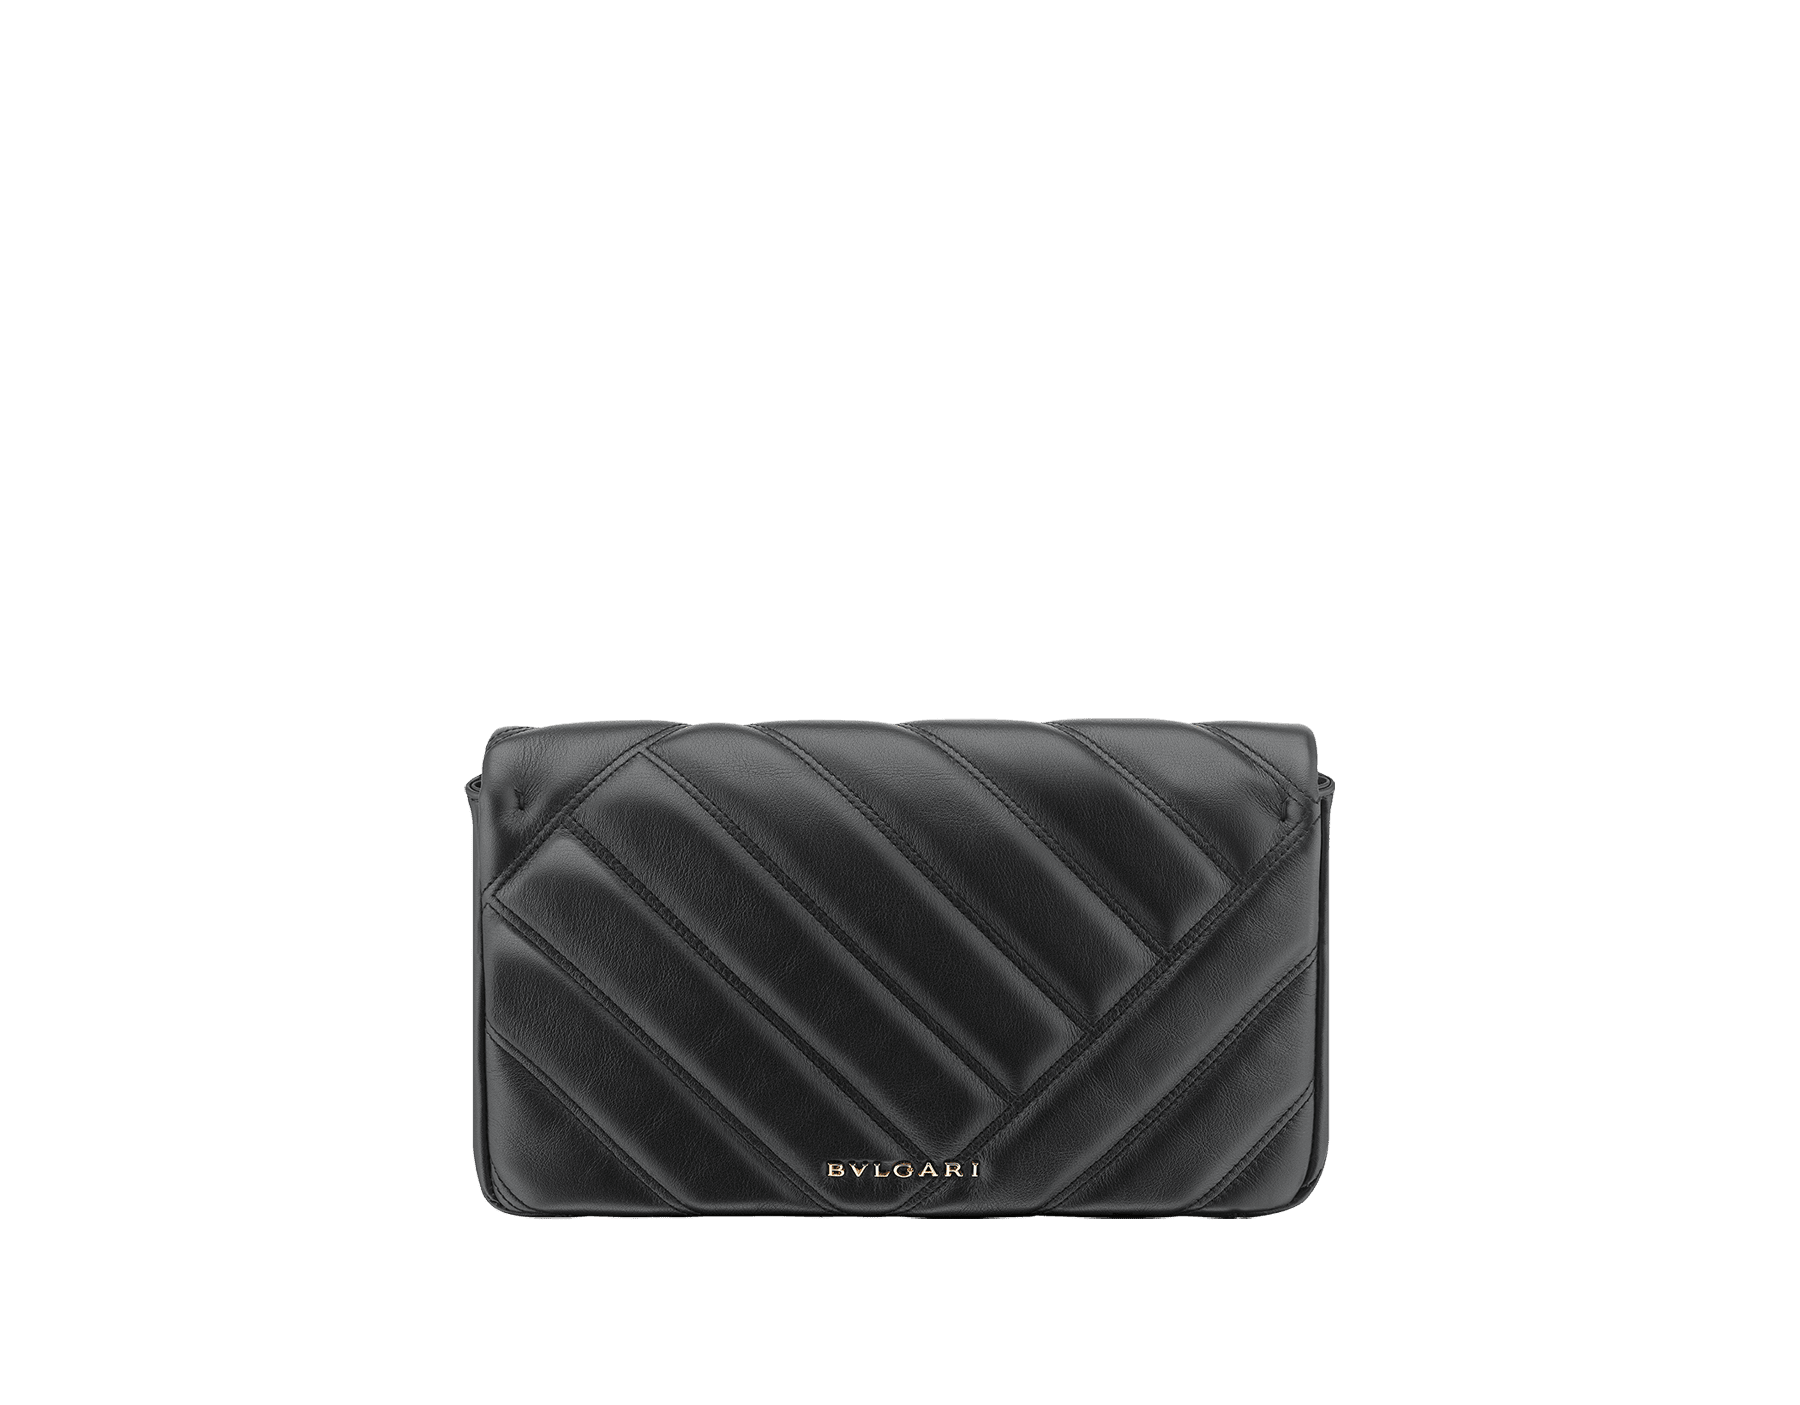 Serpenti Cabochon clutch bag in soft matelassé black calf leather, with a graphic motif. Tempting pink gold-plated brass snake head closure in matt and shiny black enamel and black onyx eyes. 289301 image 3